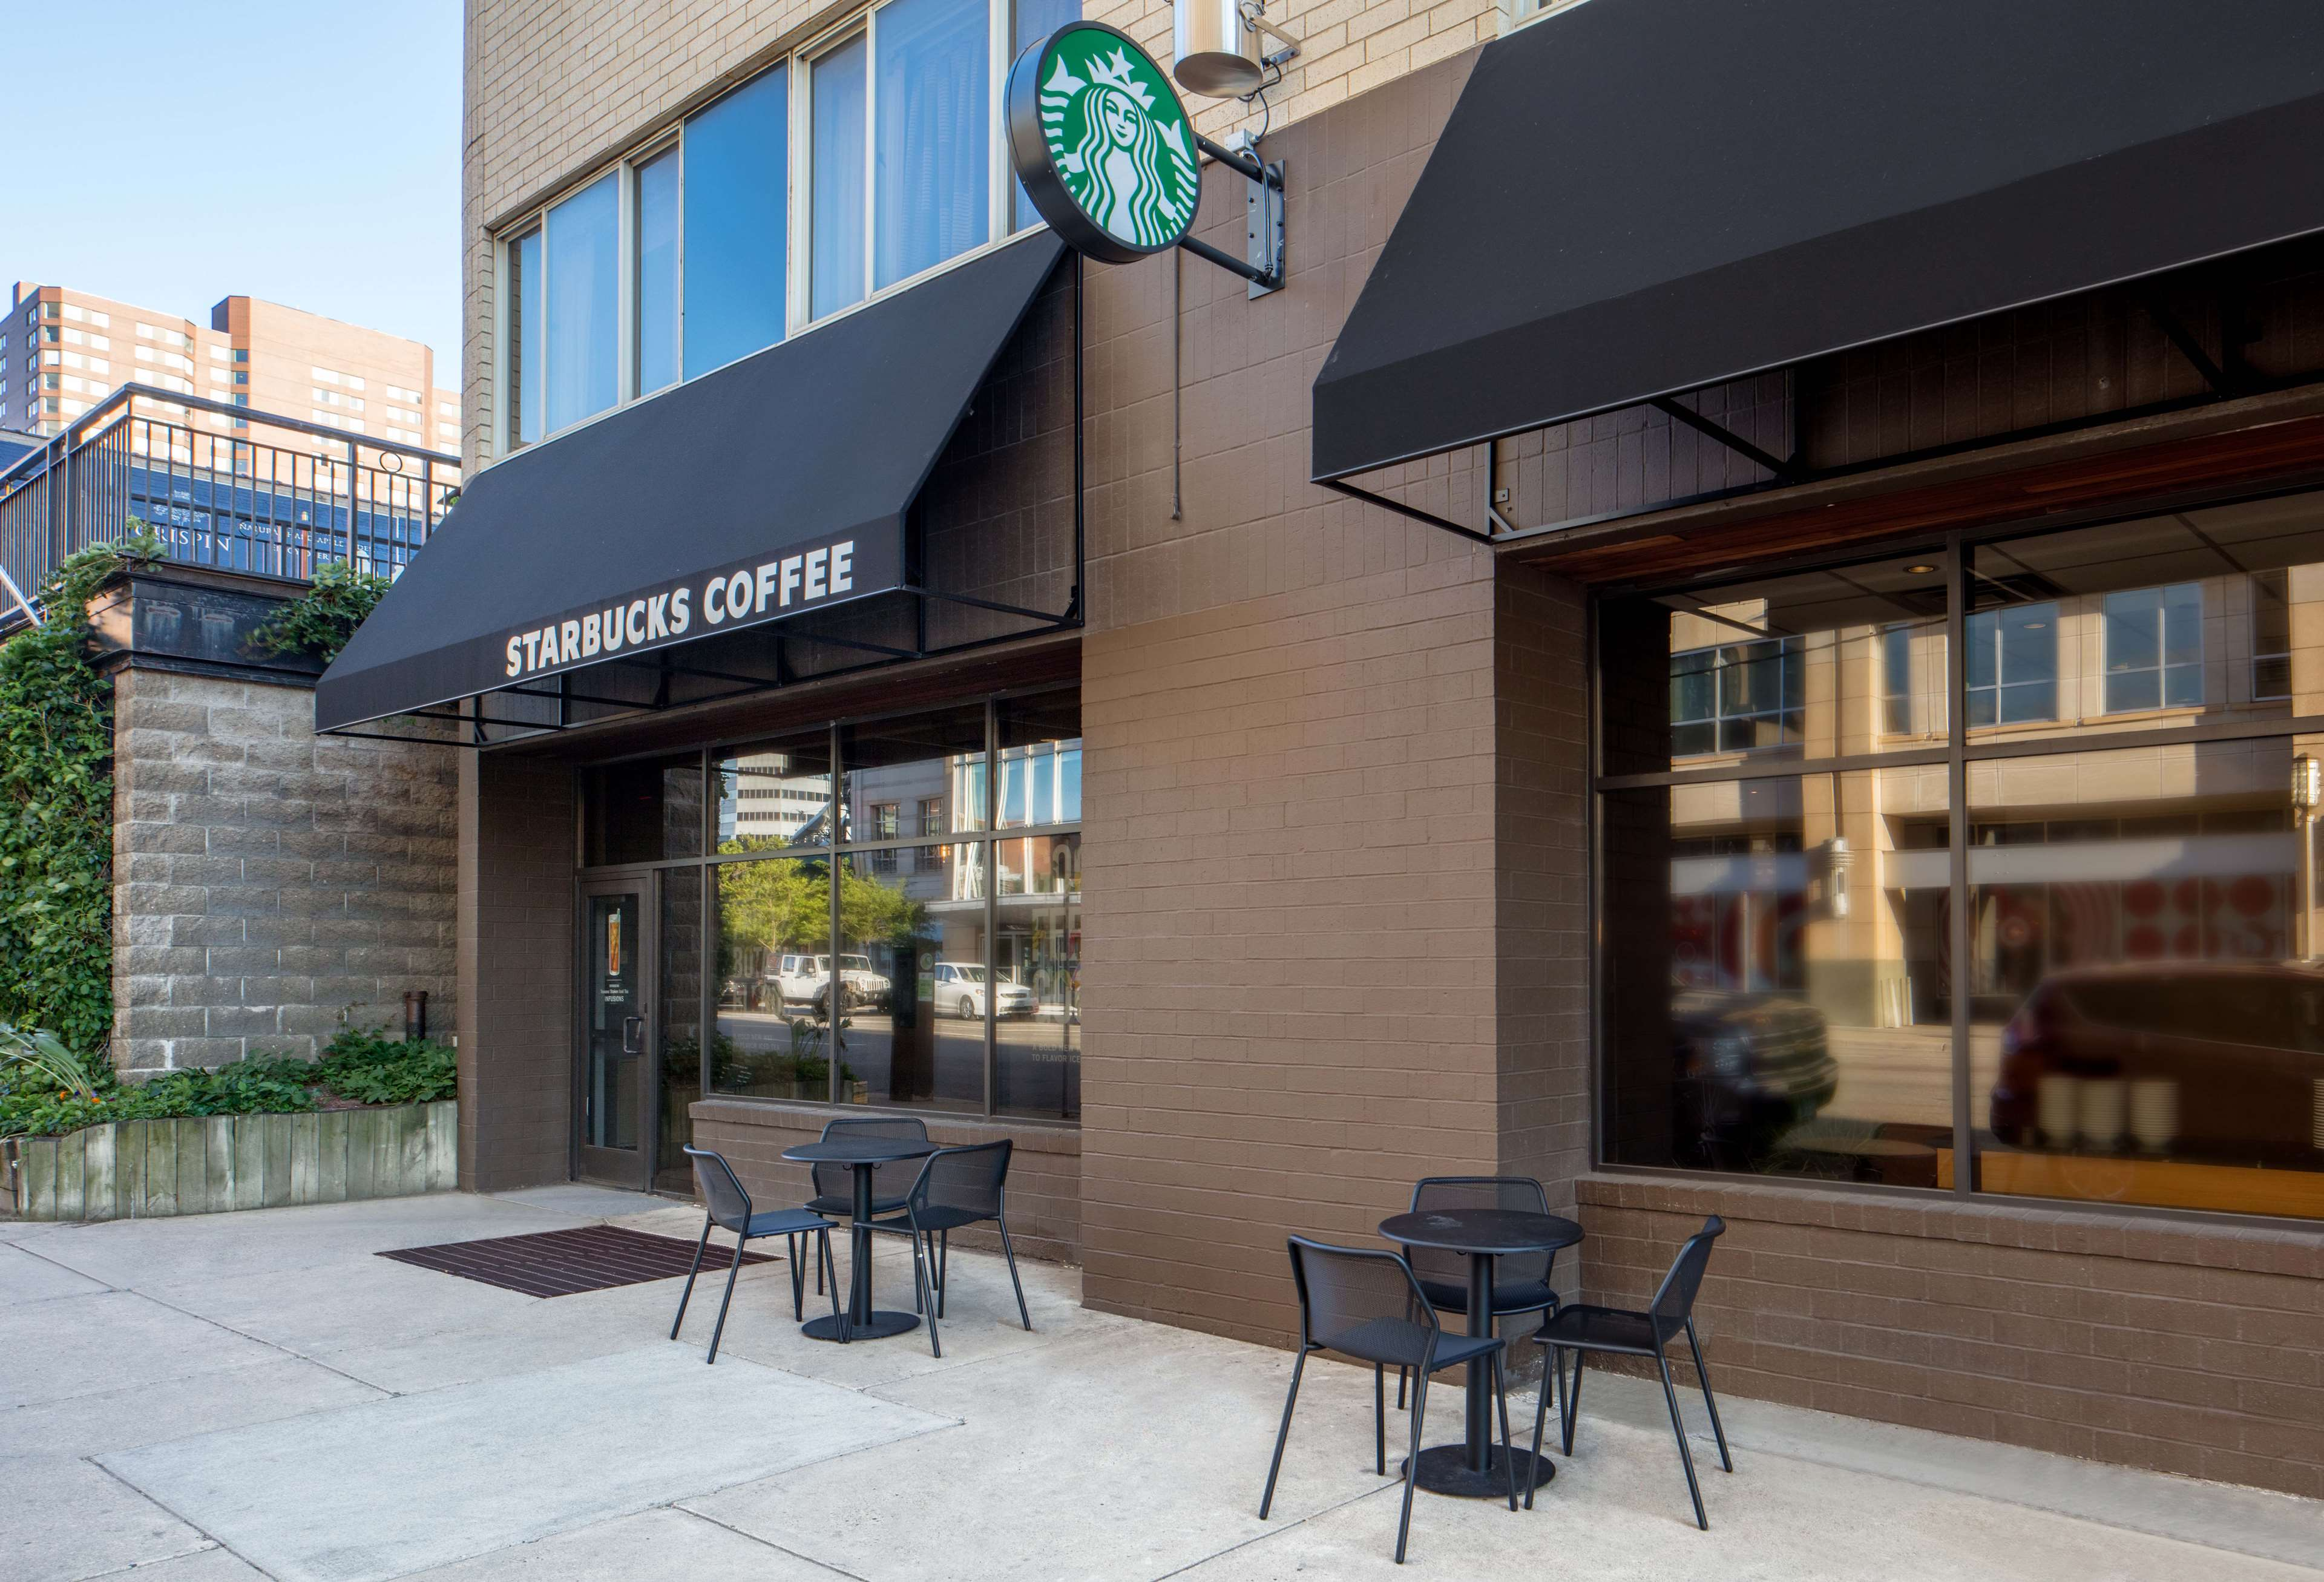 DoubleTree Suites by Hilton Hotel Minneapolis image 7